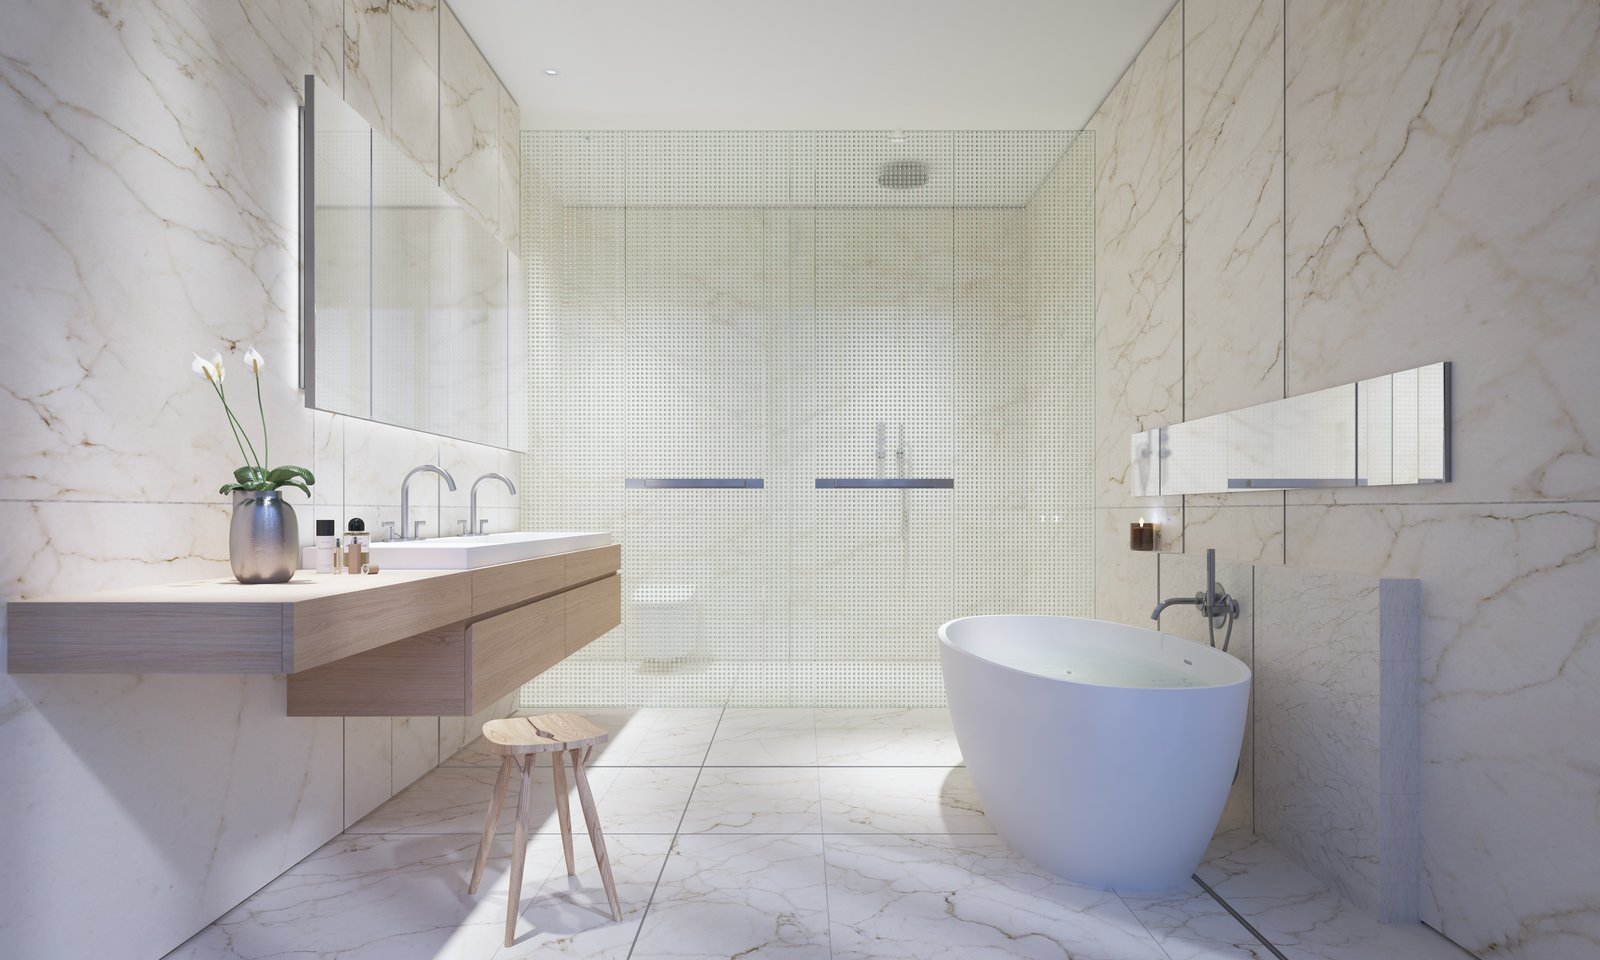 The master bathrooms will line the perimeter glass walls, which will ensure breathtaking skyline views. They'll host Calacatta caldia marble slabs, freestanding tubs, heated floors, and custom-designed white oak vanities.